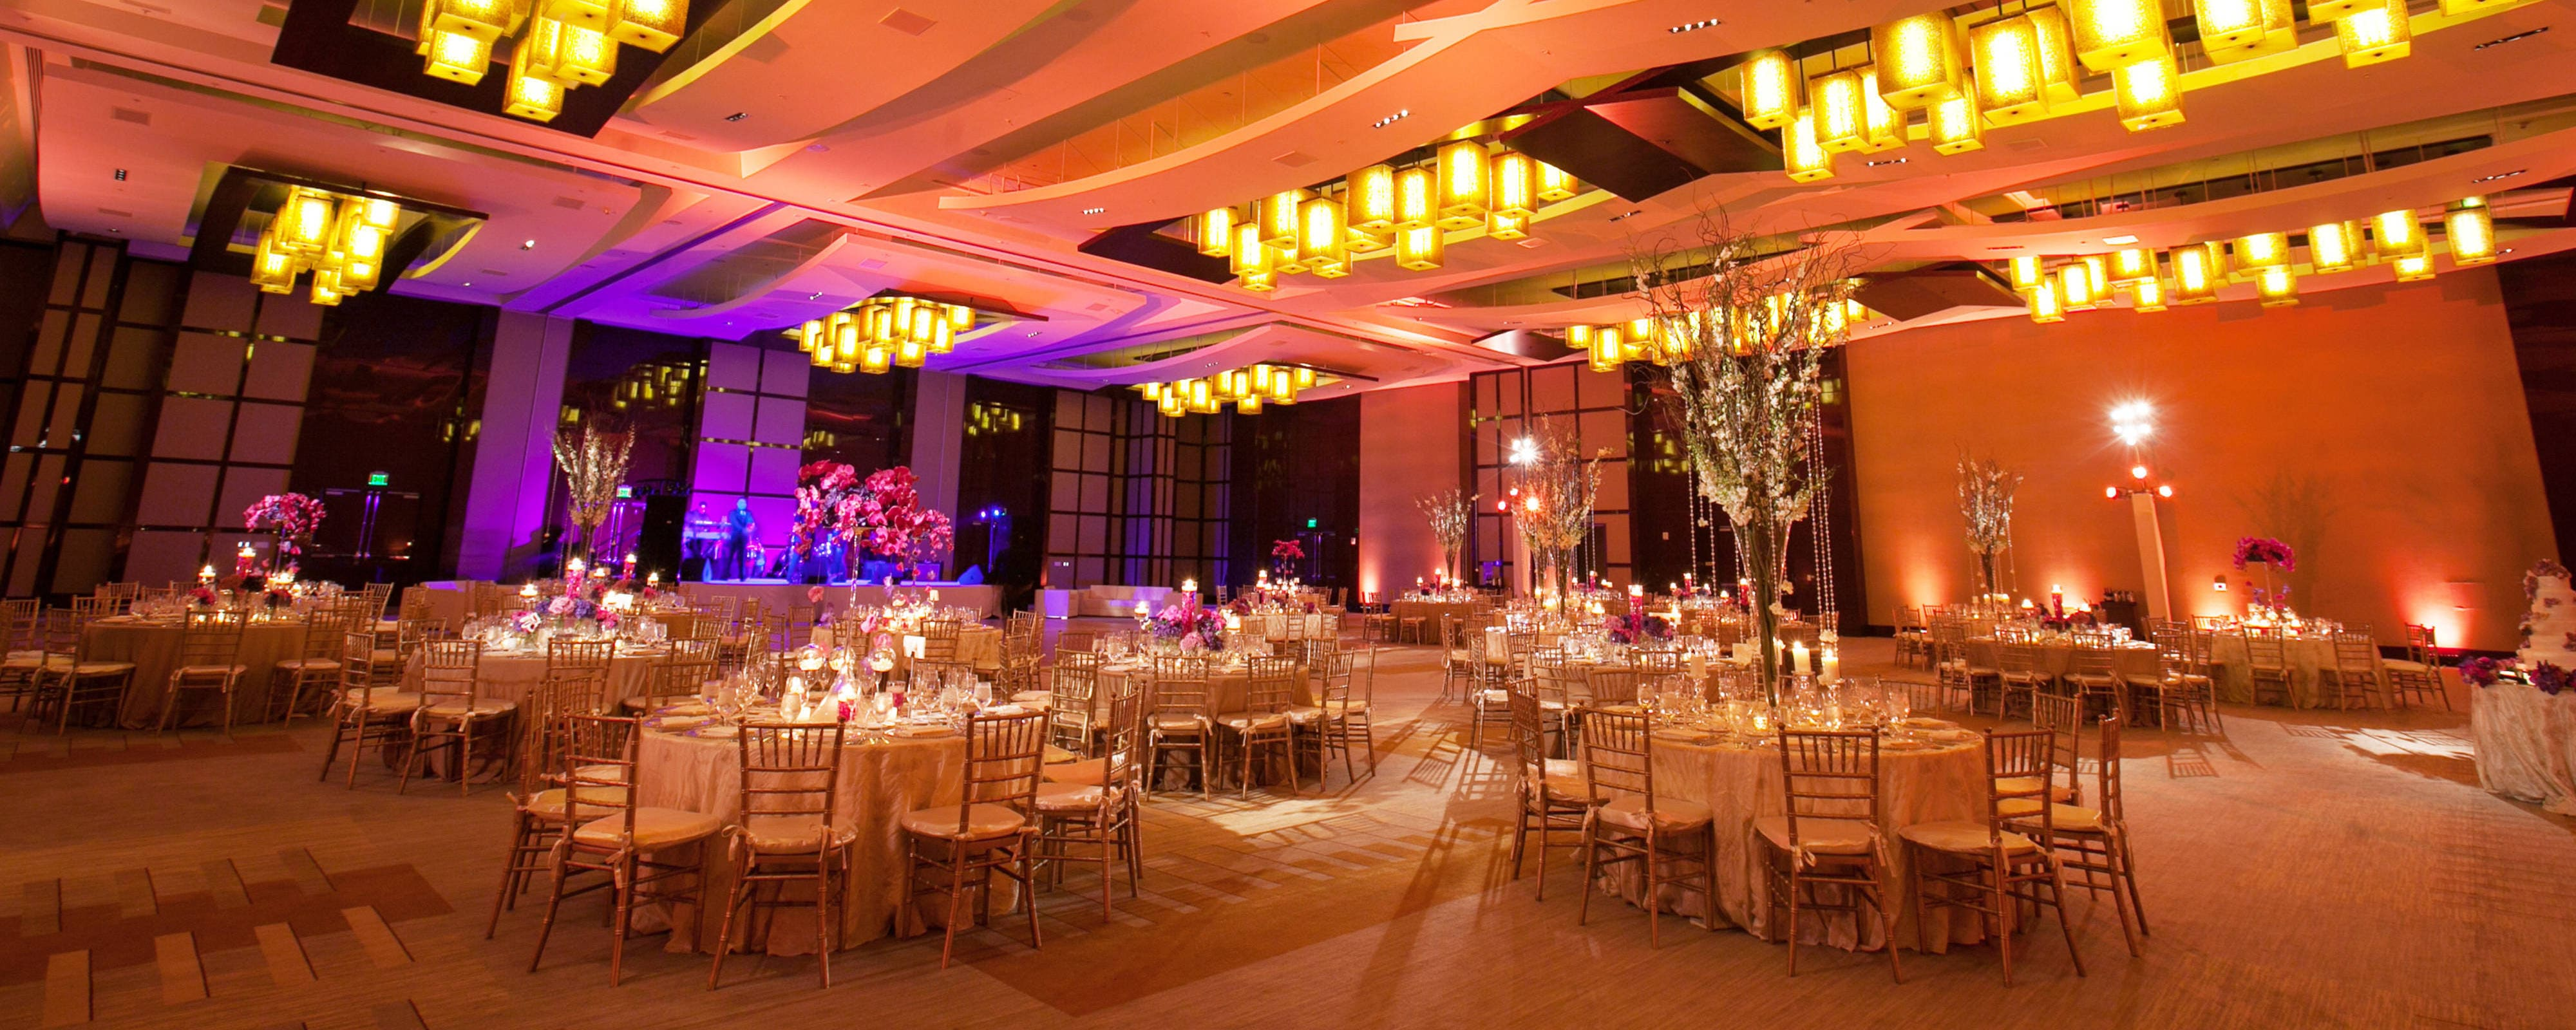 Wedding Venue Amp Hotel In Miami Jw Marriott Marquis Miami